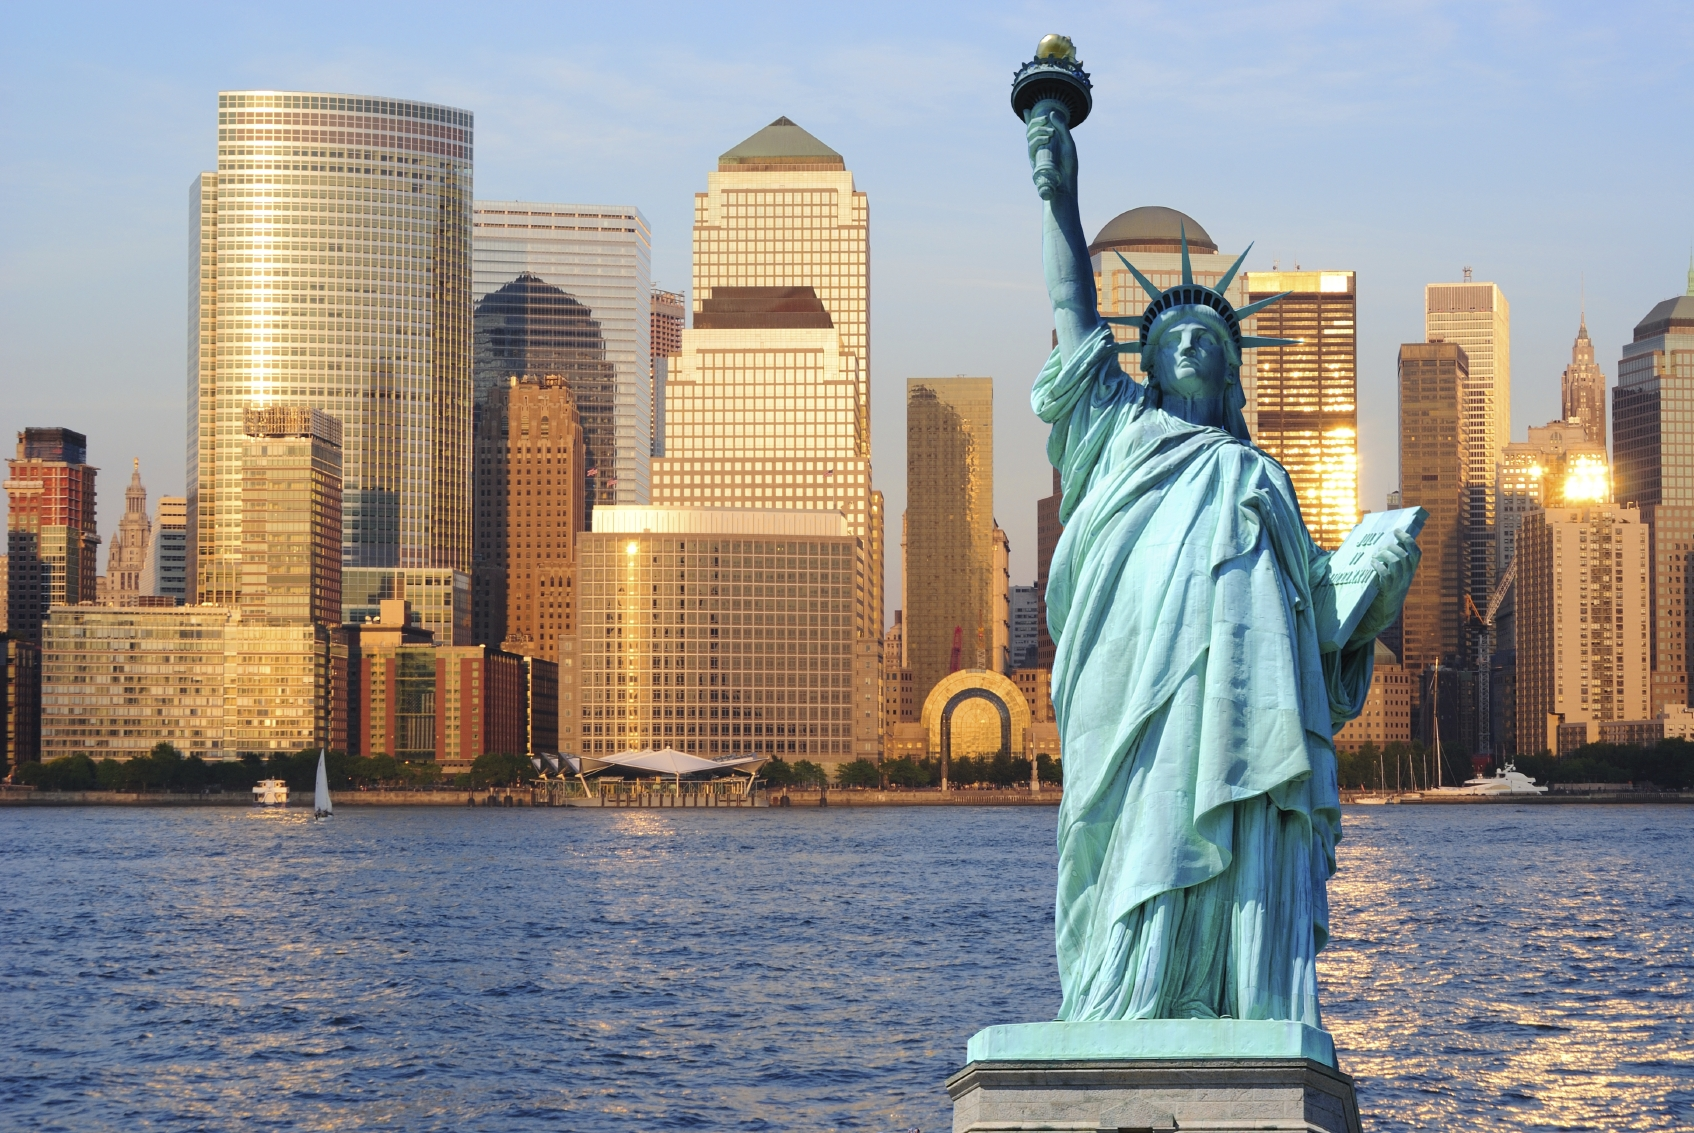 The statue of liberty against the New York City skyline.